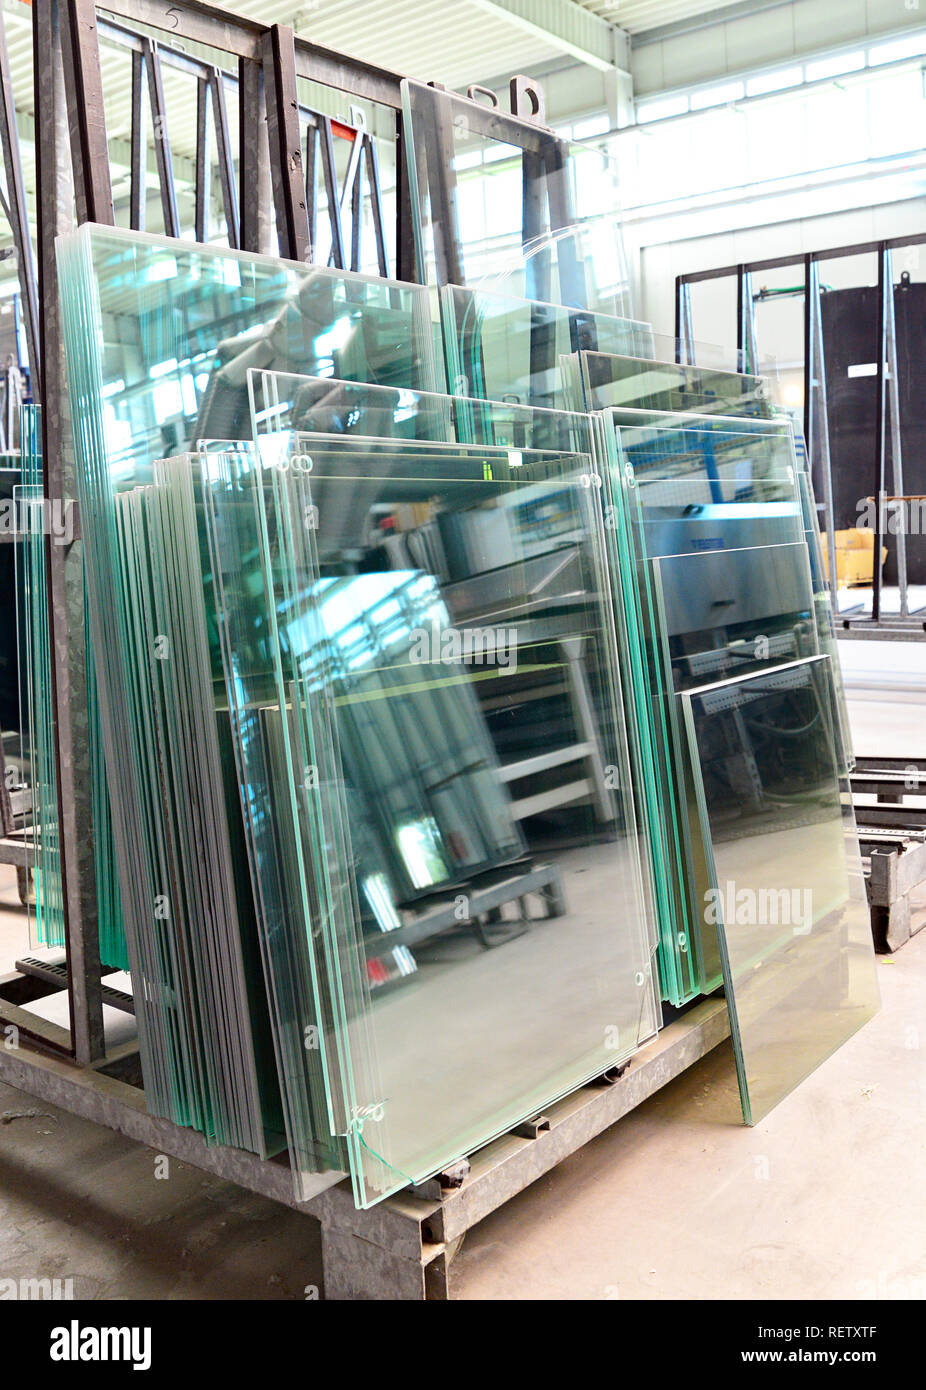 storage of finished glass panes for sale for house construction in a glassworks - Stock Image